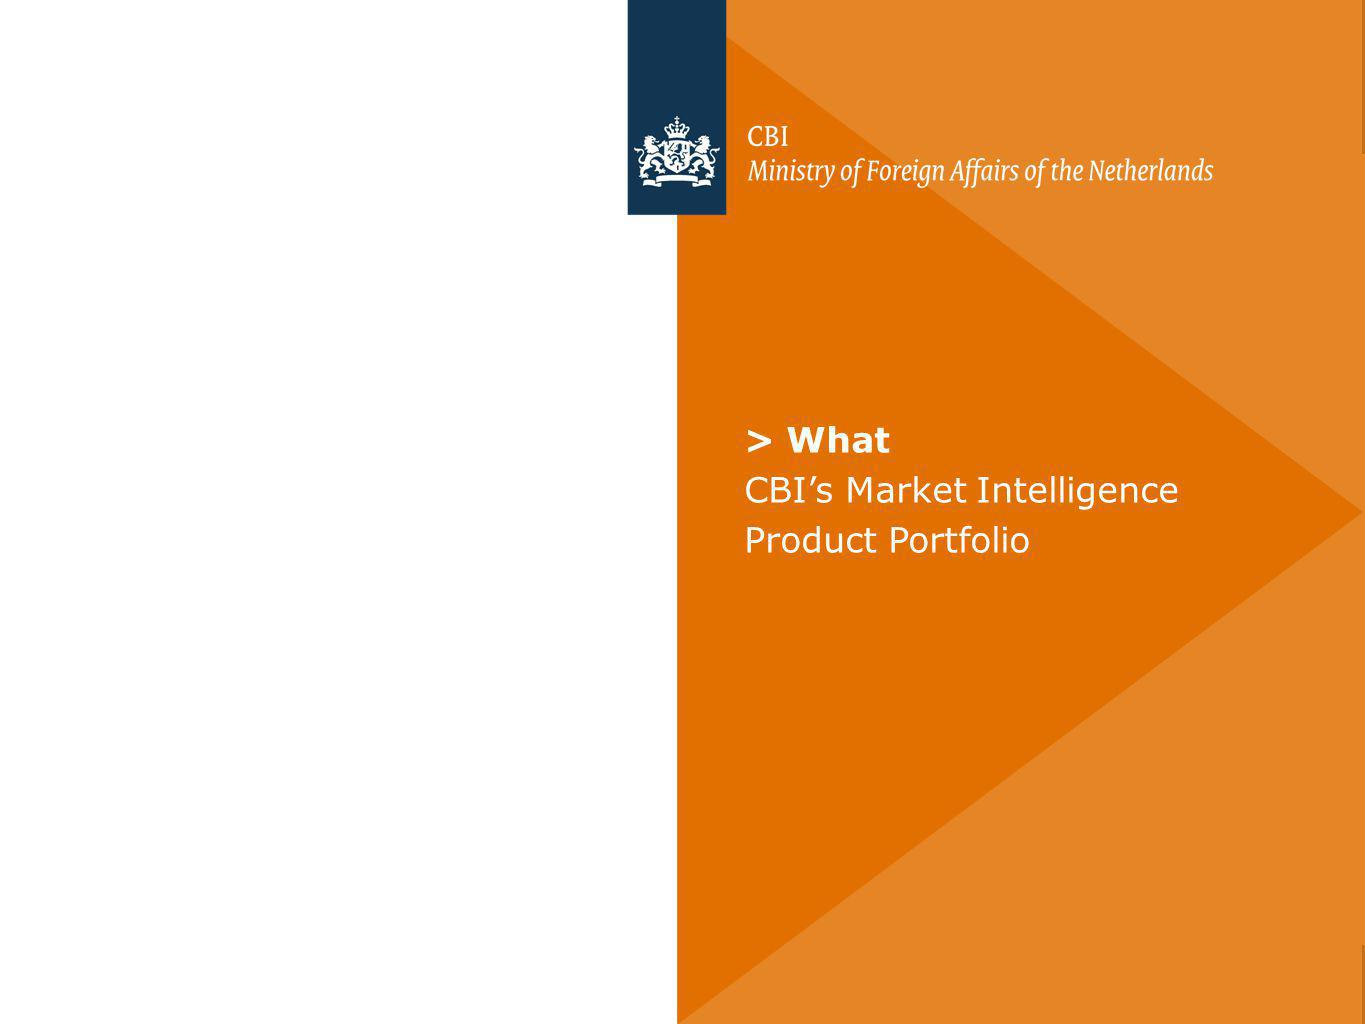 > What CBIs Market Intelligence Product Portfolio